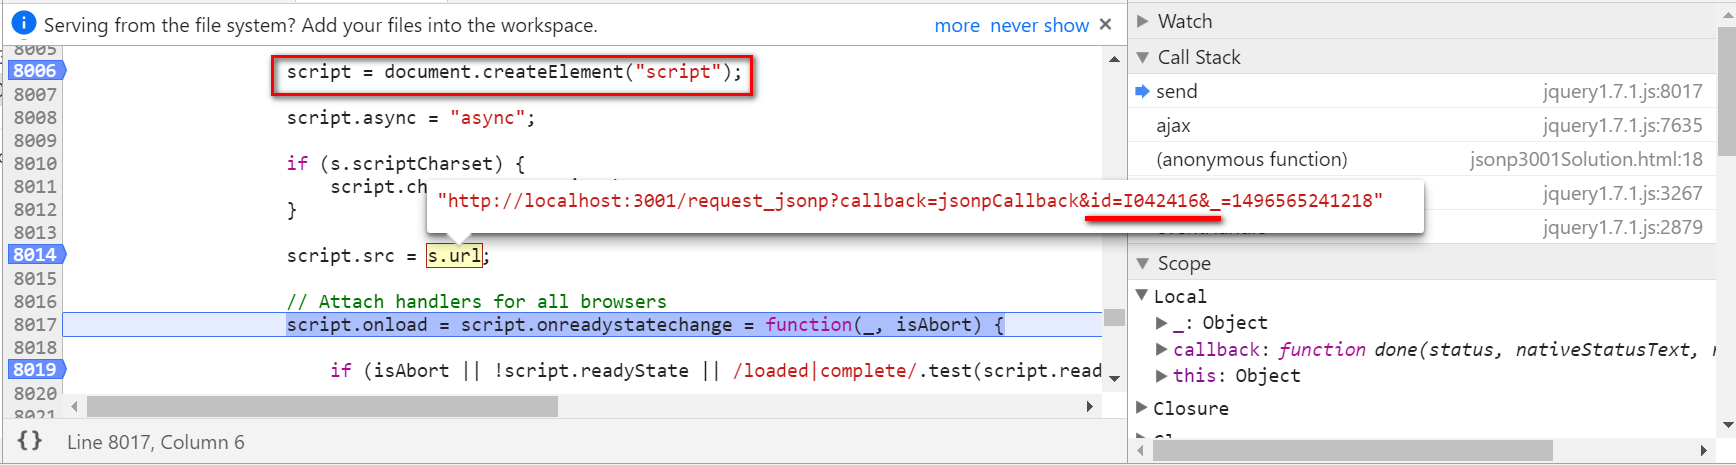 Play around with JSONP in nodeJS server and ABAP server